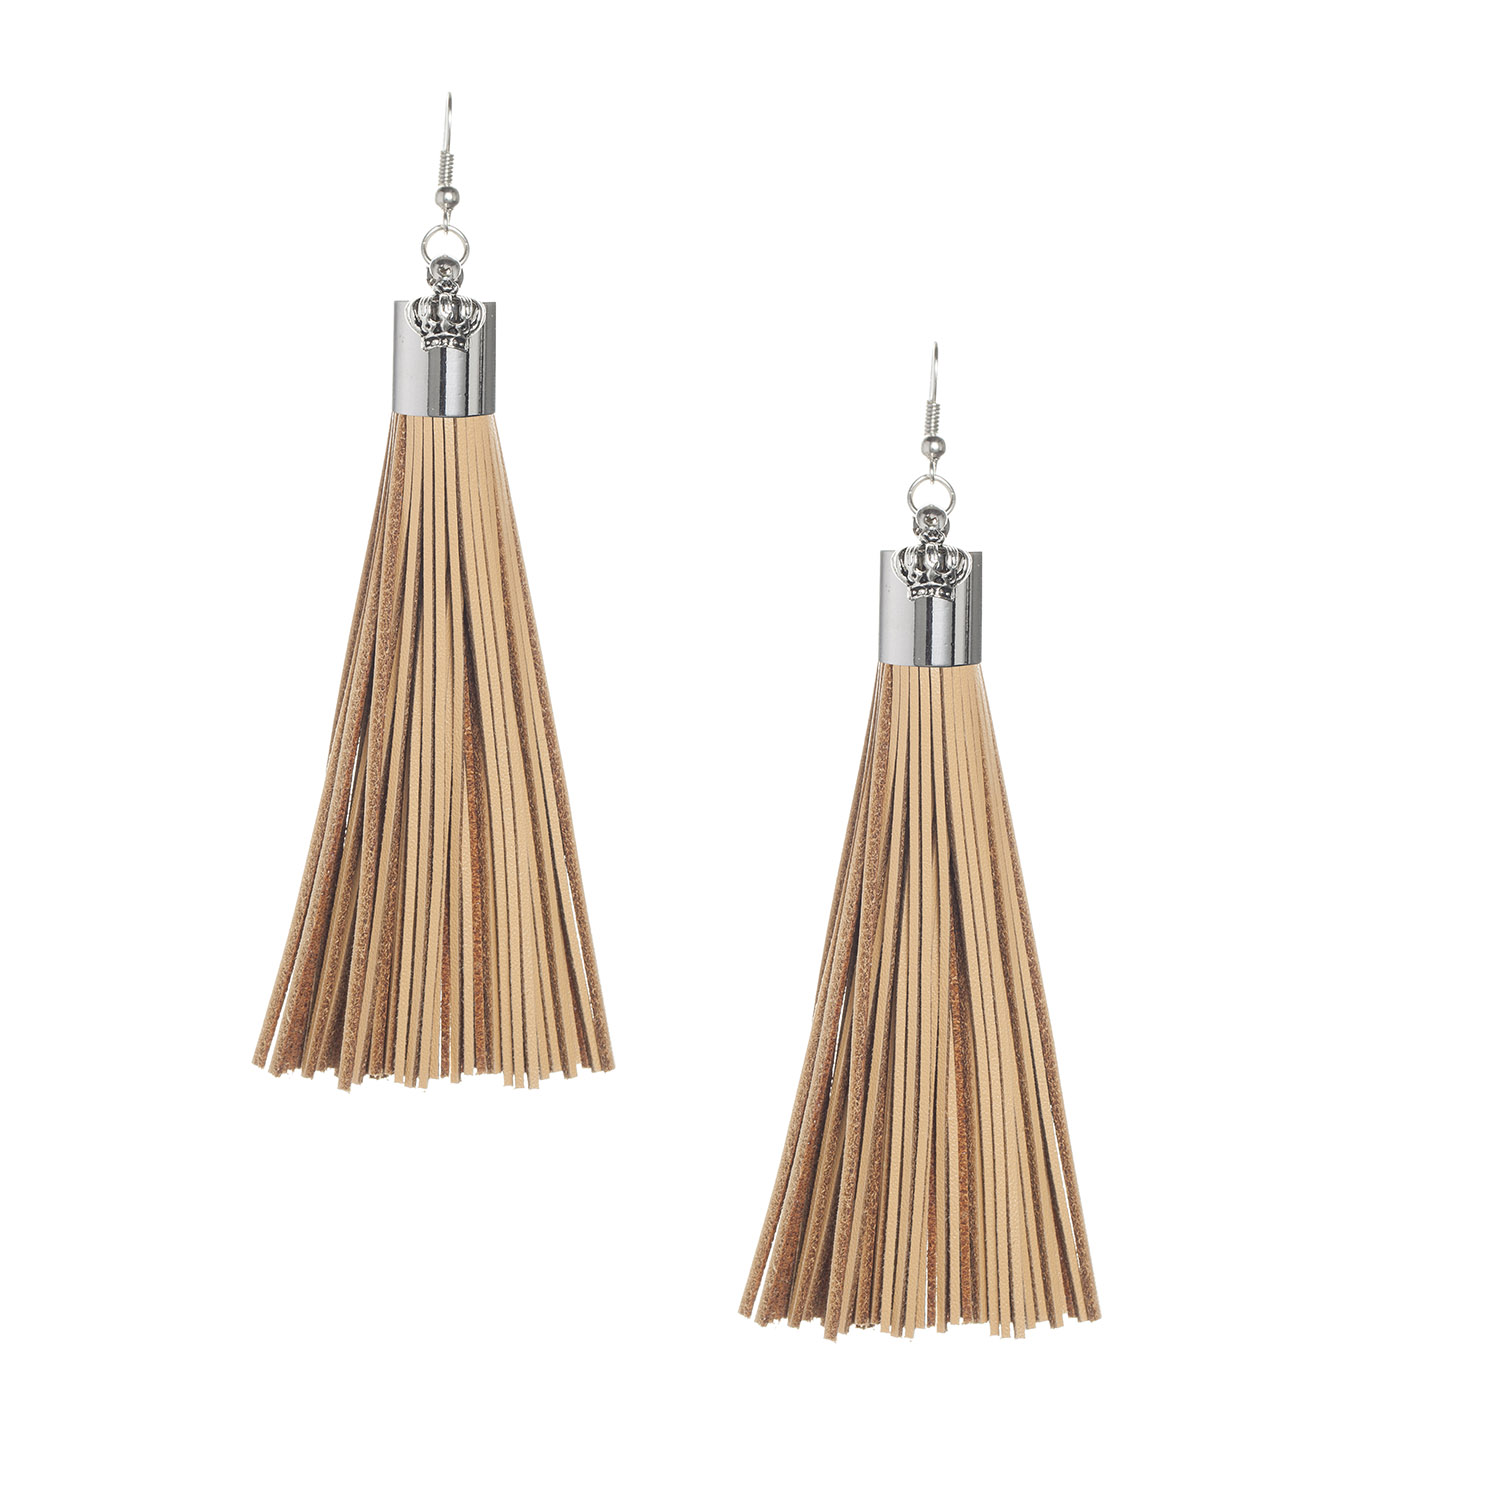 Camel Leather Tassel Earrings with Silver Cap